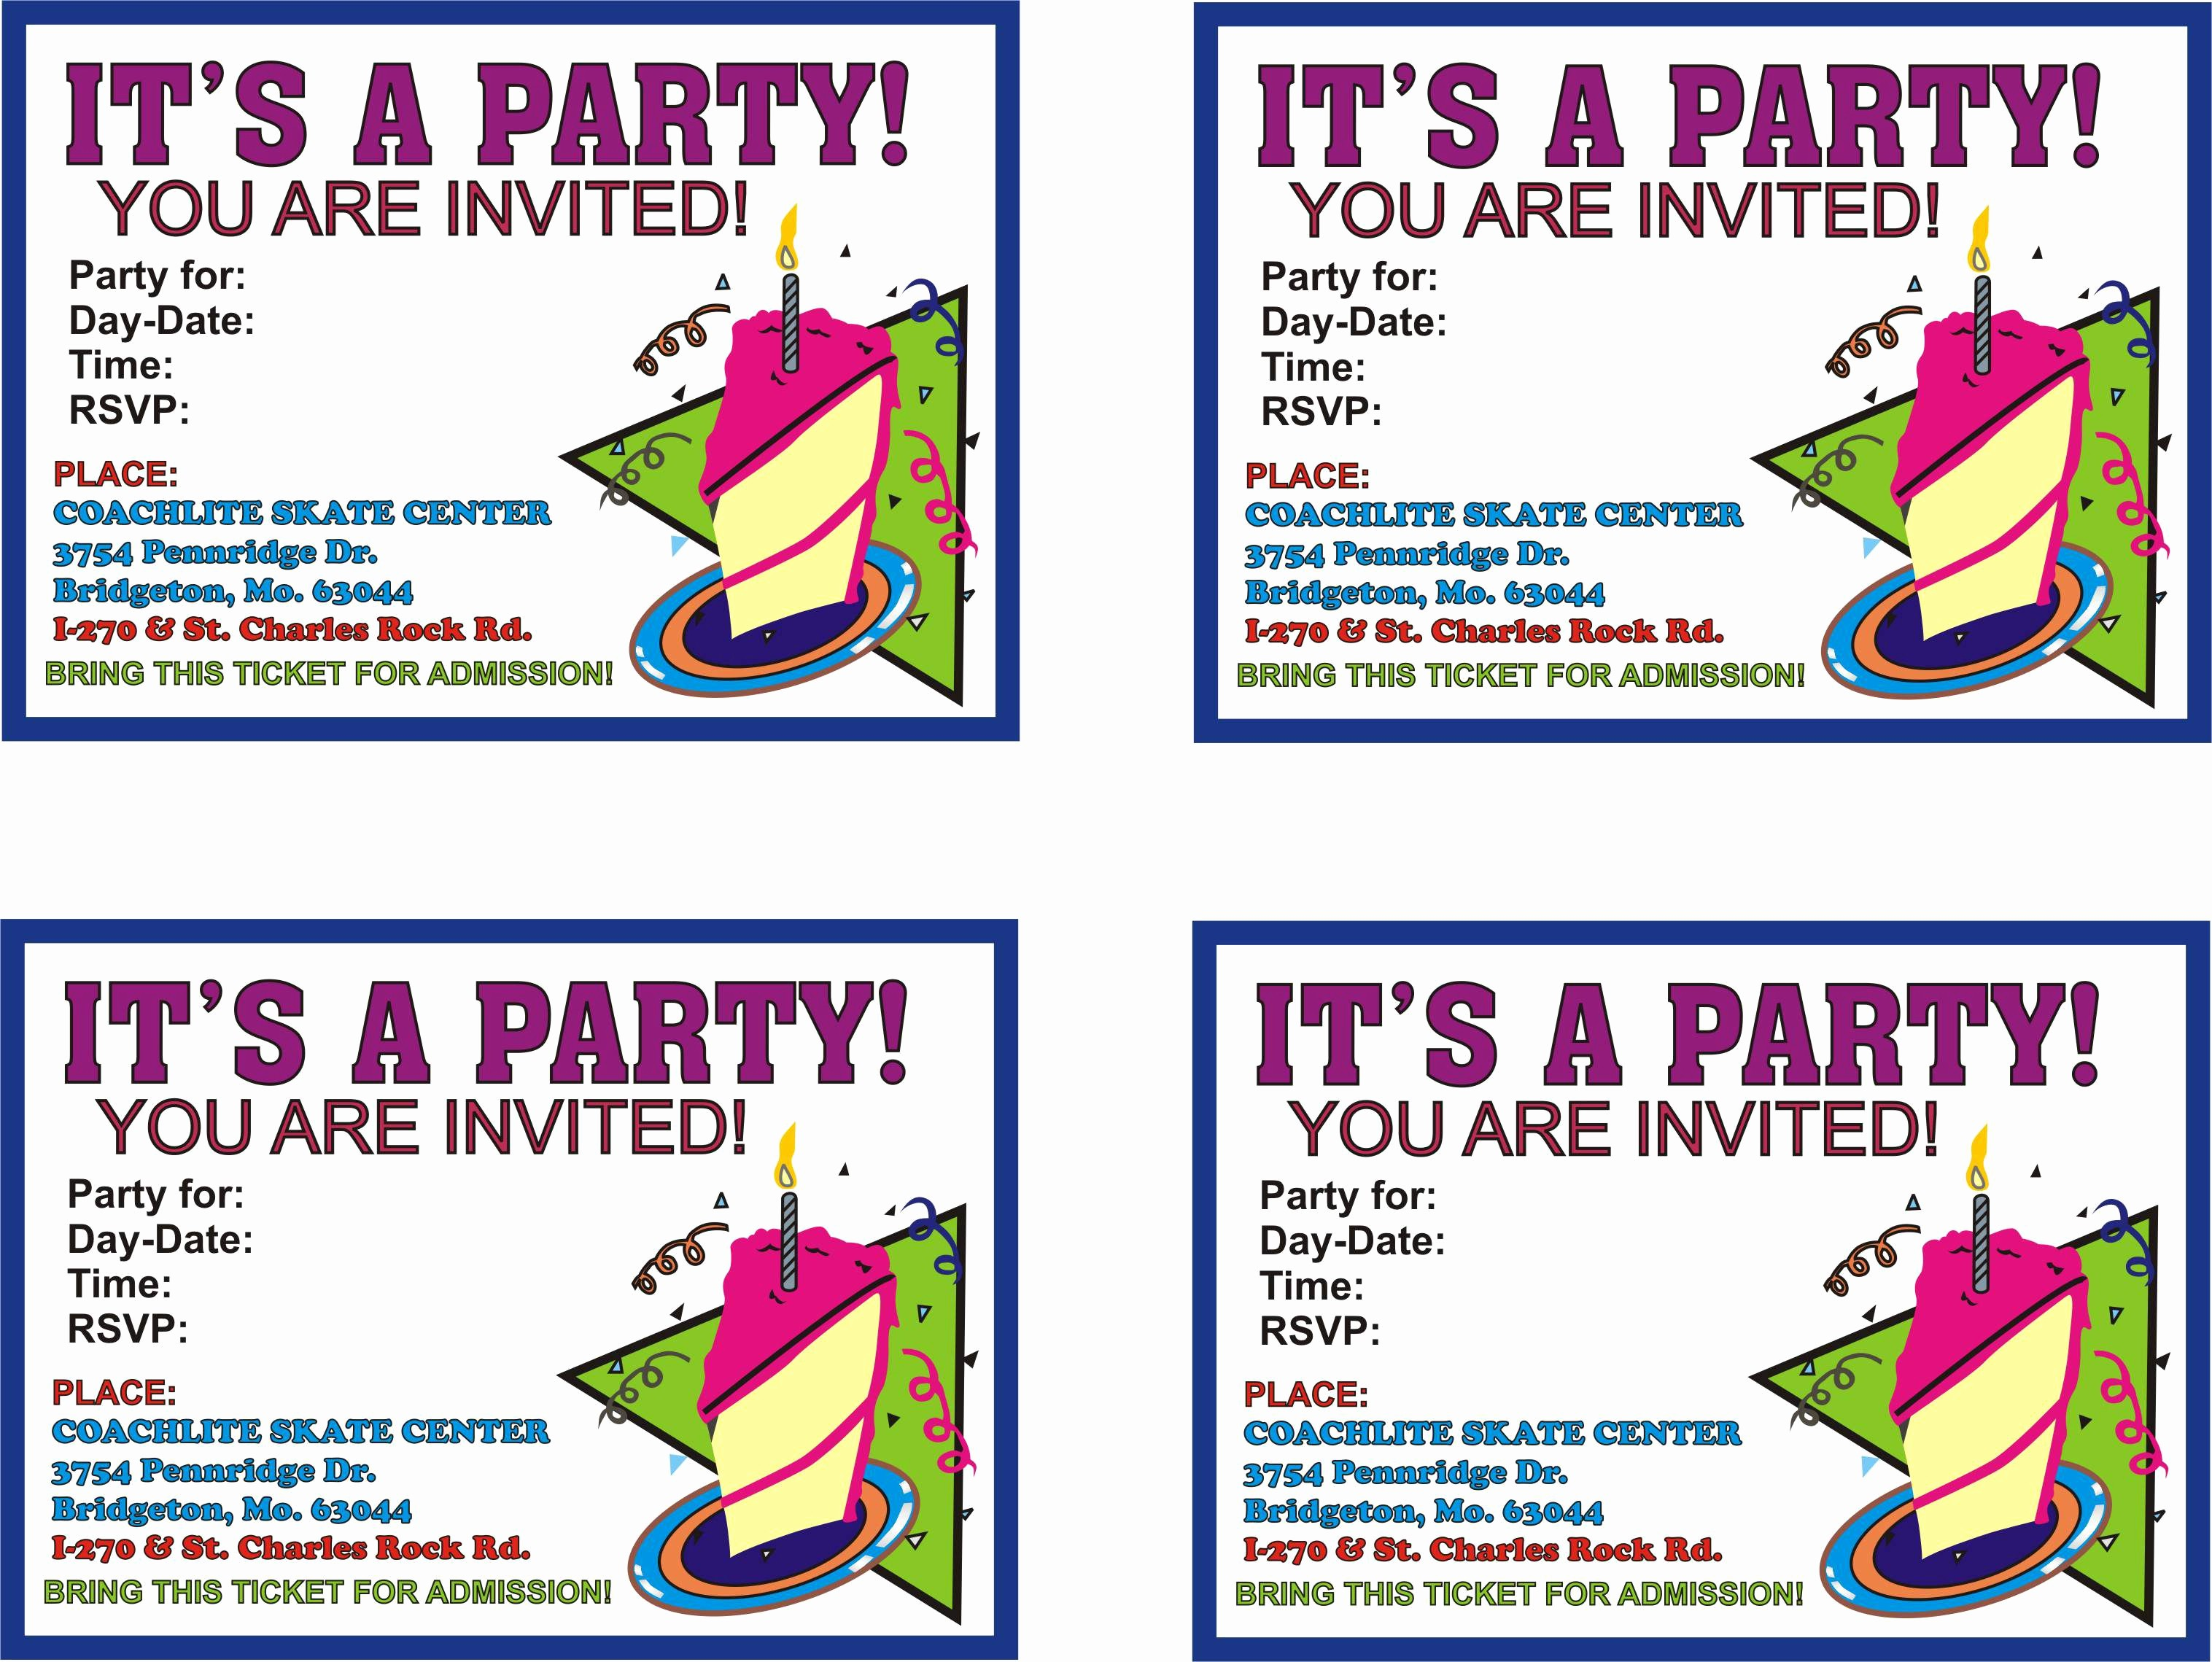 Party Invitation Templates Free Download Lovely Birthday Party Invitation Templates Free Download